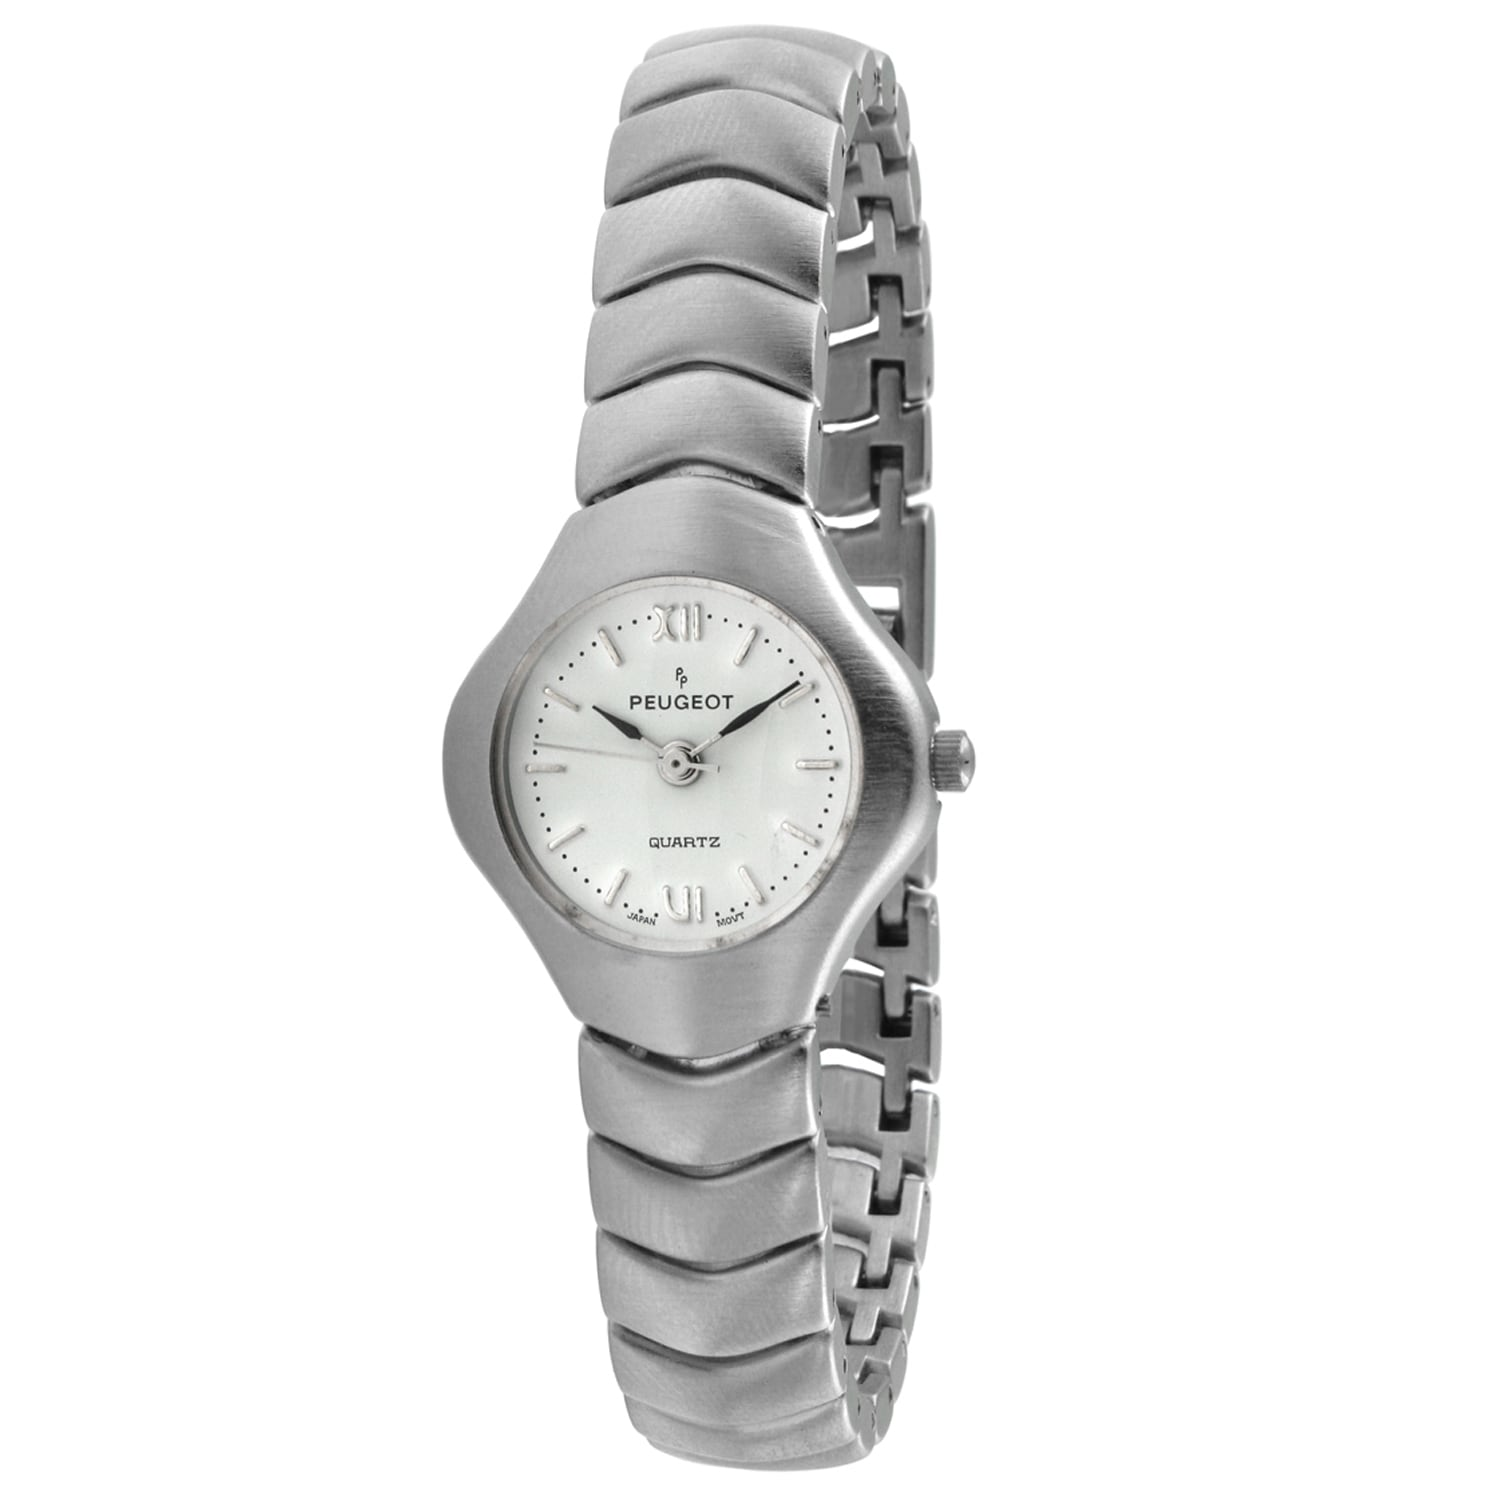 Peugeot Women's Silvertone Wave Link Watch